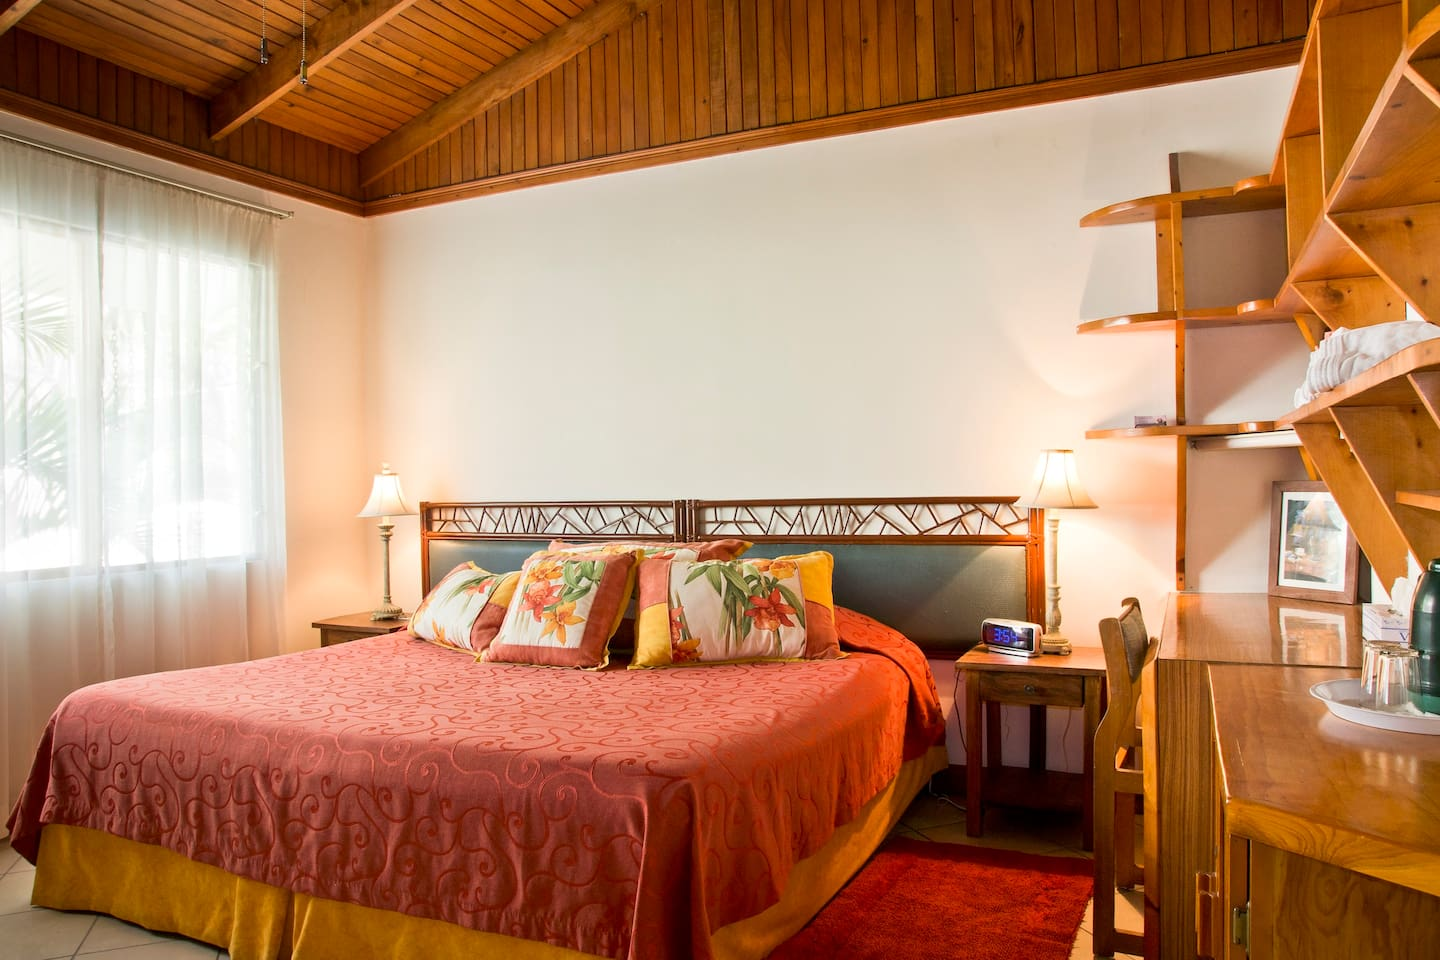 Standard room with King size bed and semi-private bathroom - garden view